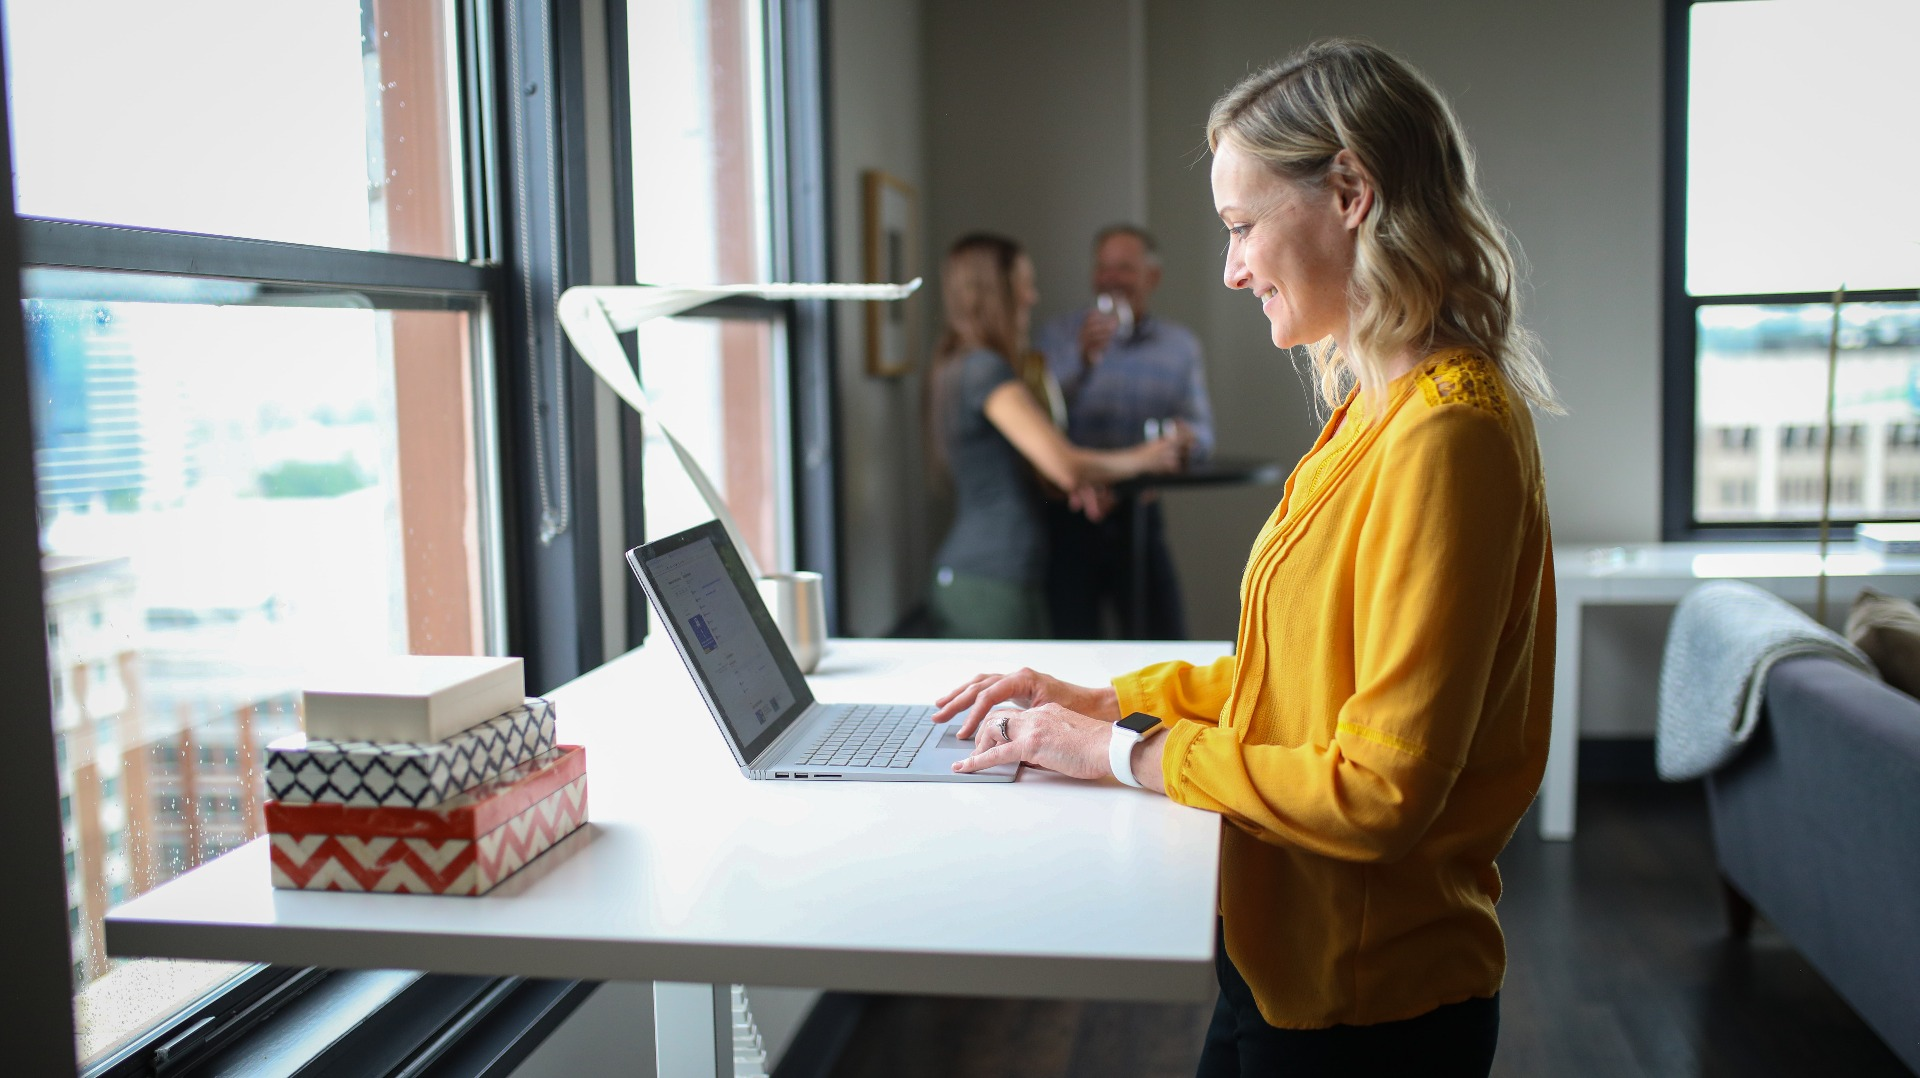 Woman smiling at a standing desk